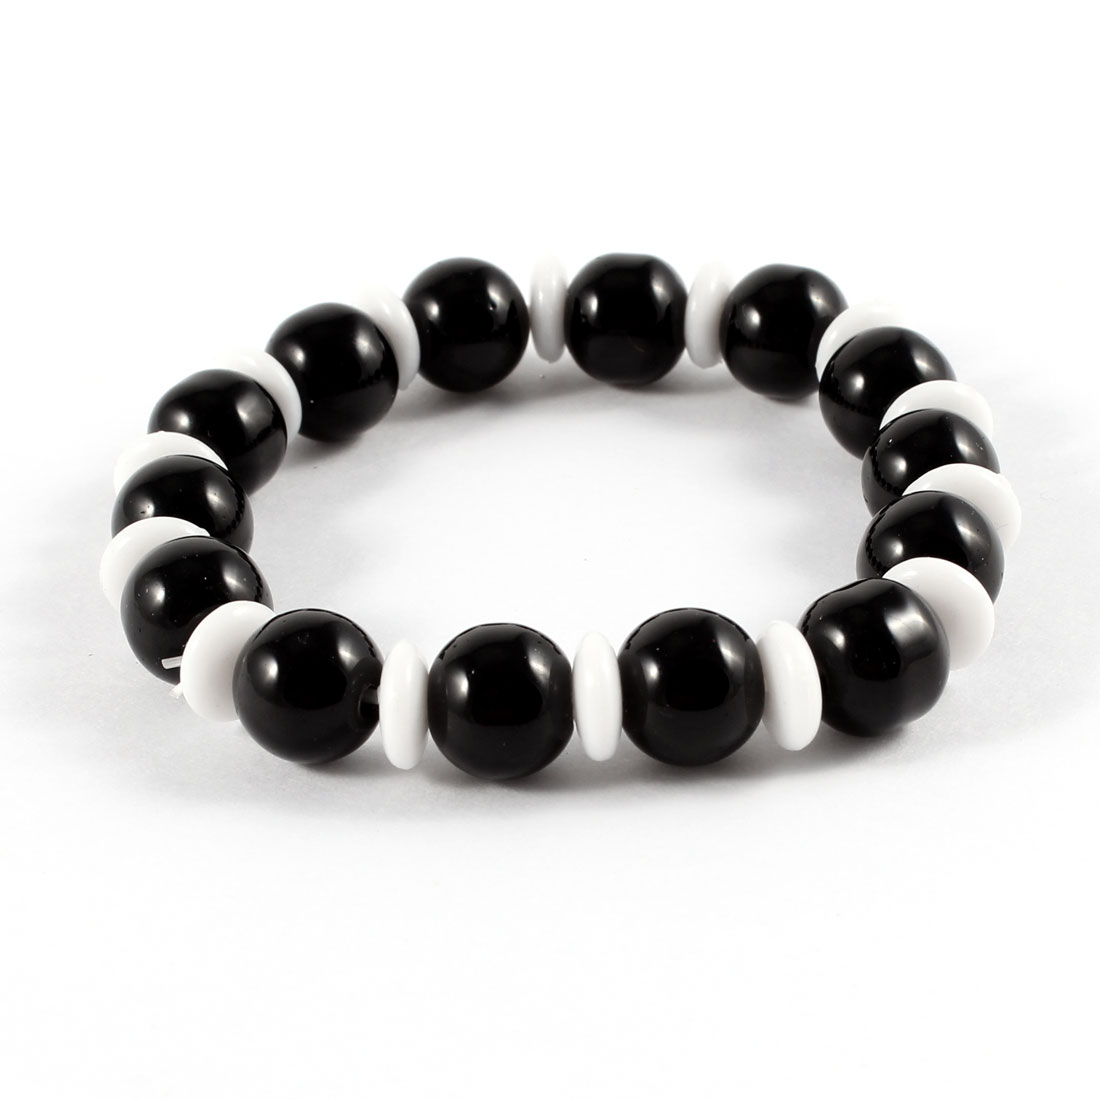 Black White Round Beads Decor Elastic String Bracelet for Woman